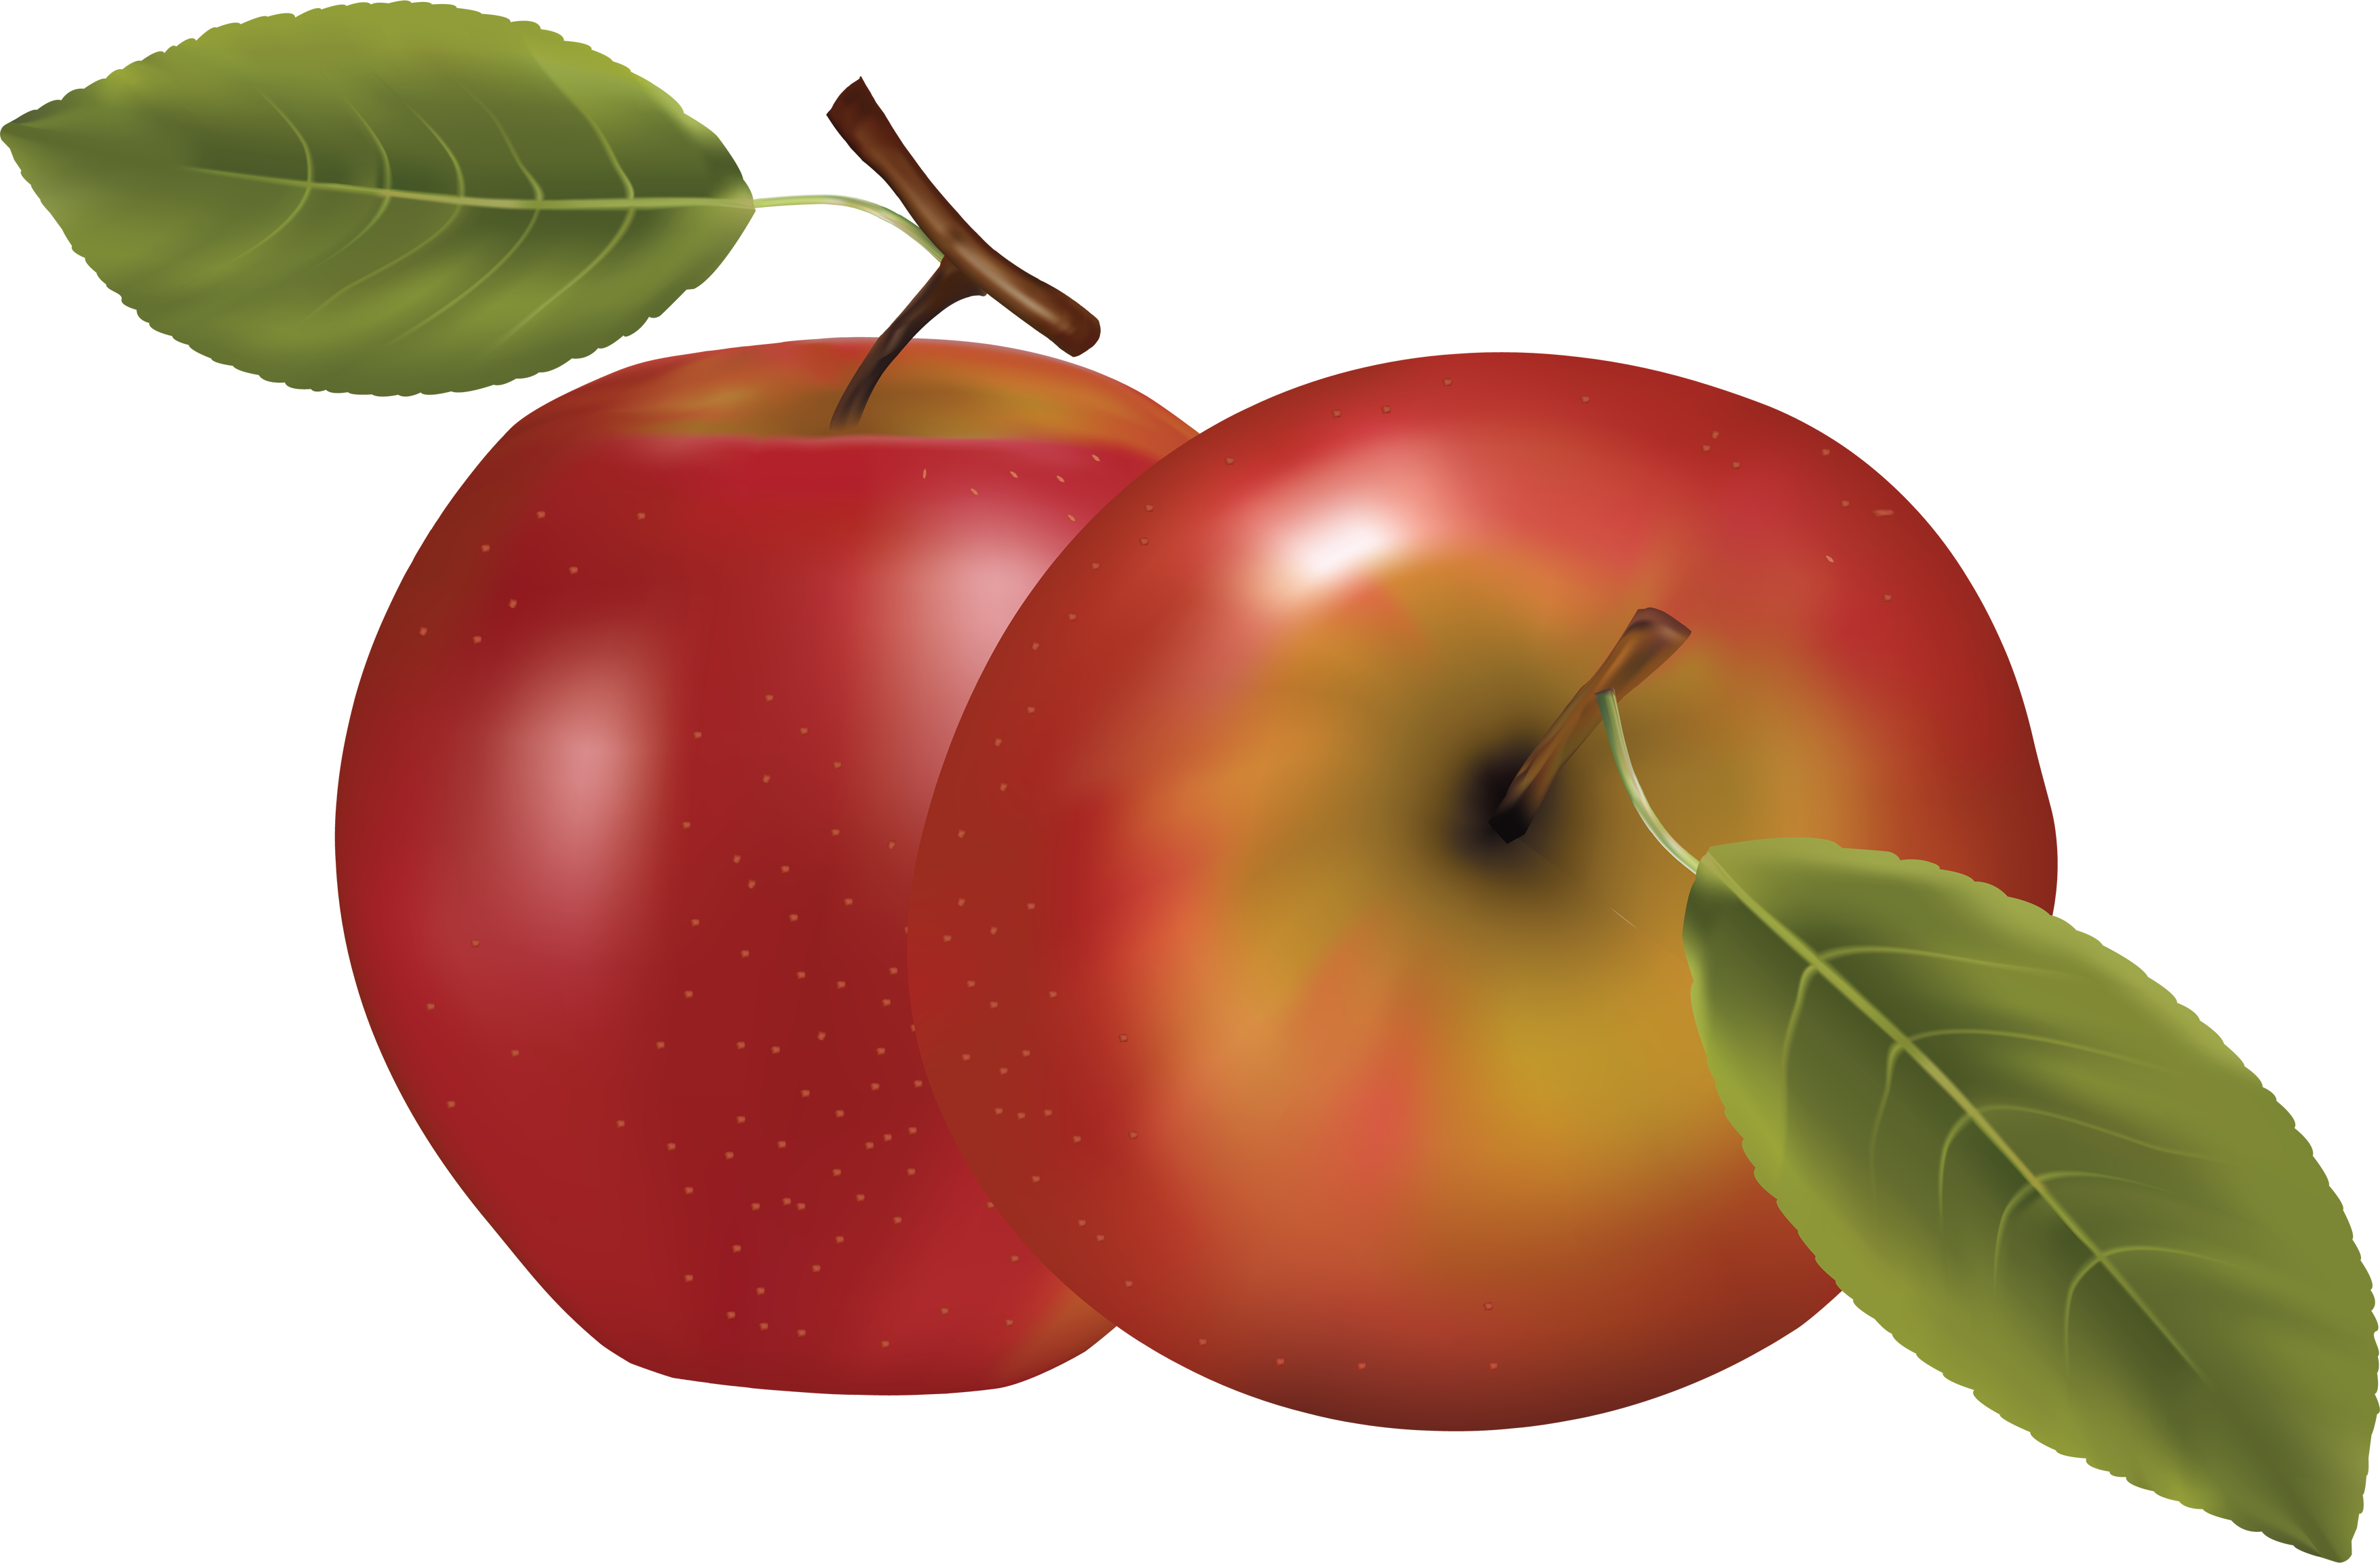 Apple clipart transparent background svg royalty free Red Apple PNG Image - PurePNG | Free transparent CC0 PNG Image Library svg royalty free